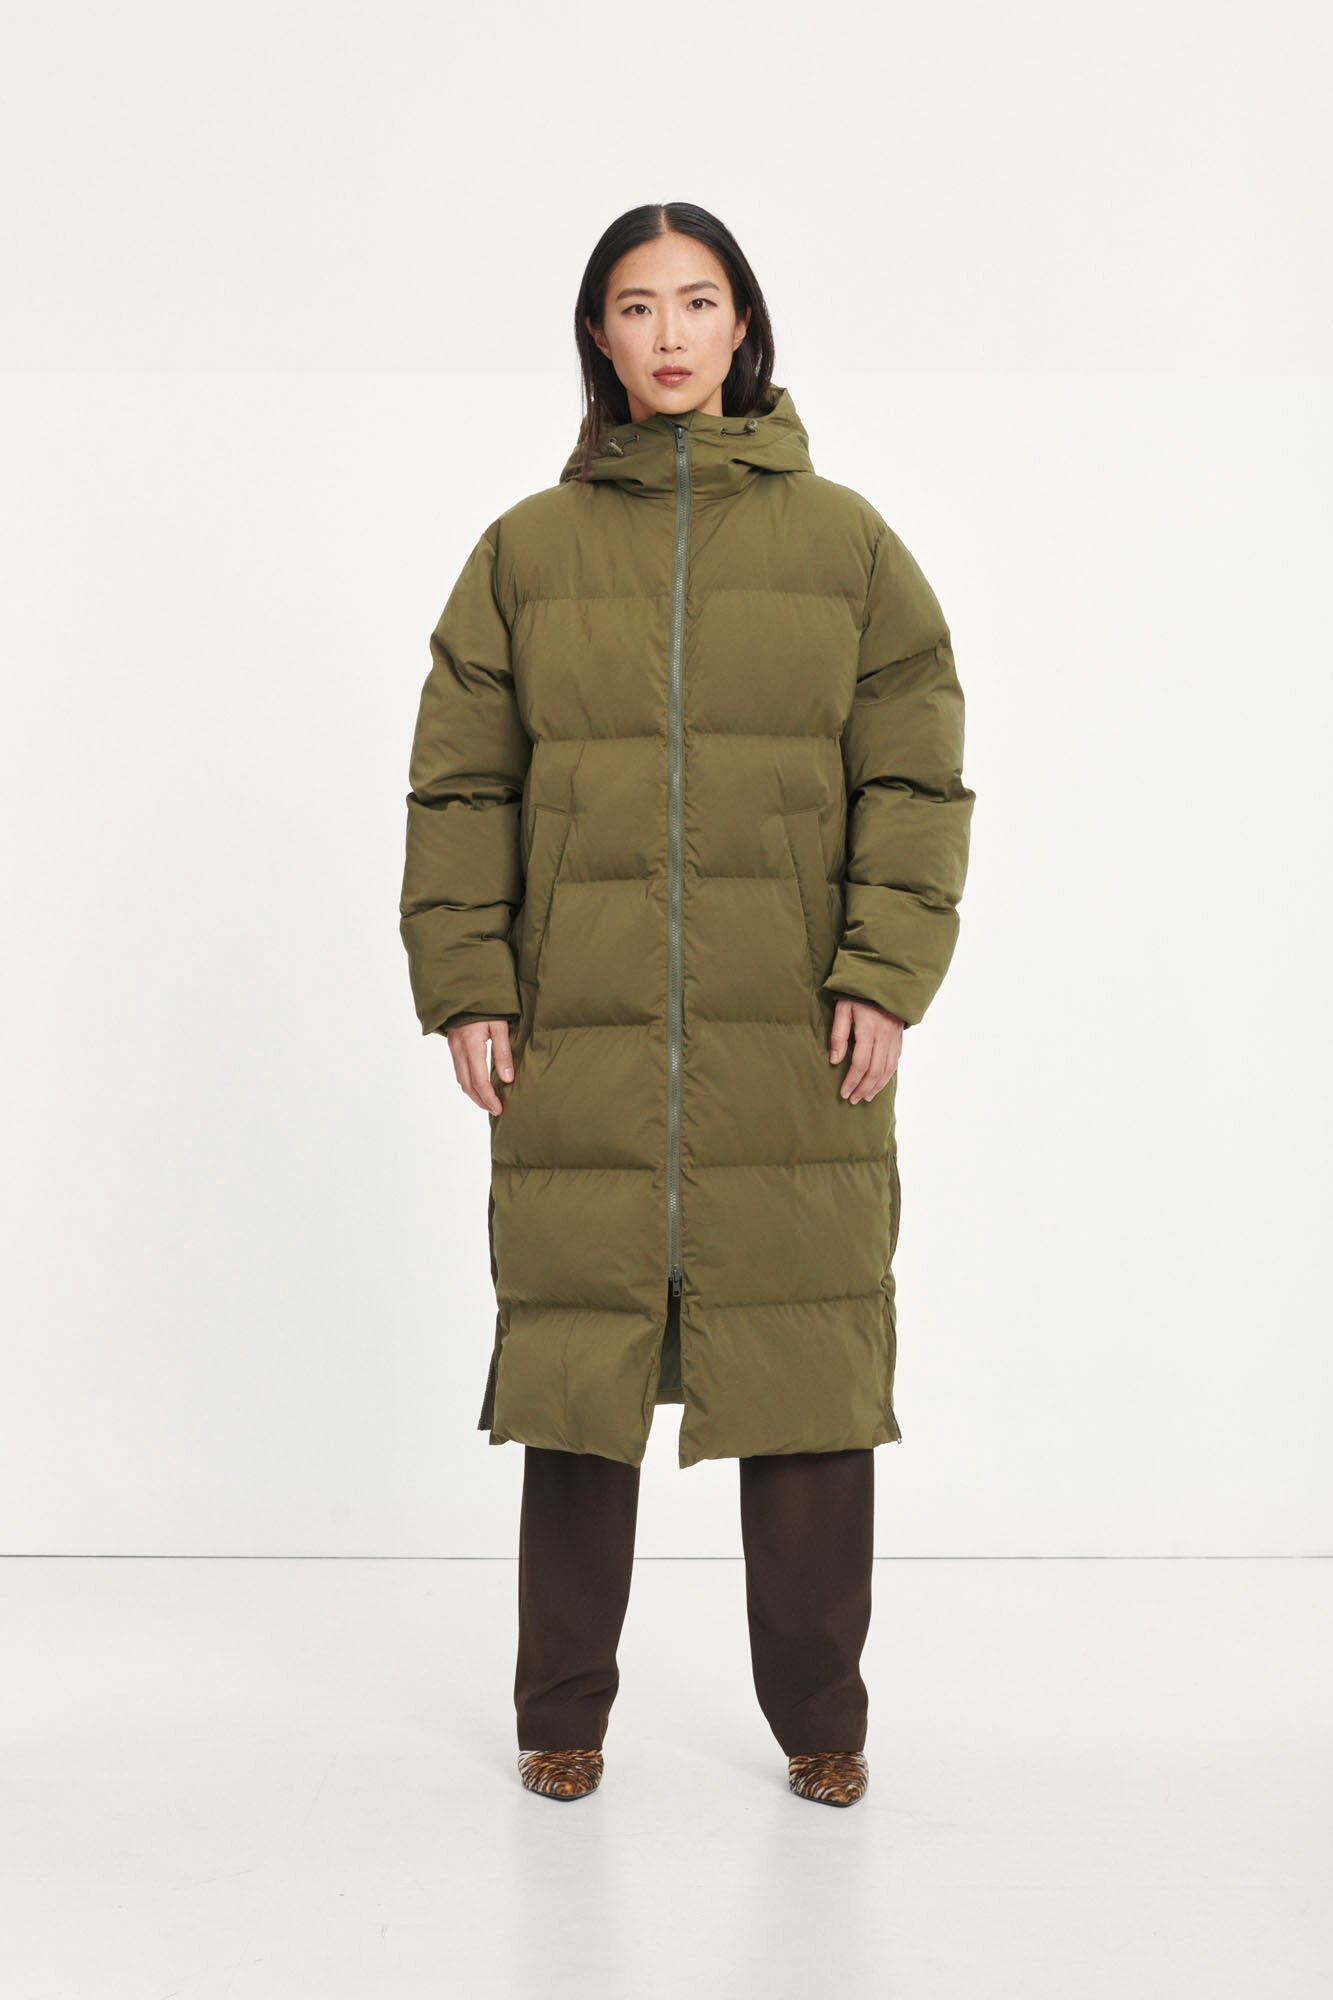 LONG PUFFER COAT IN MOSS GREEN BY SAMSOE SAMSOE